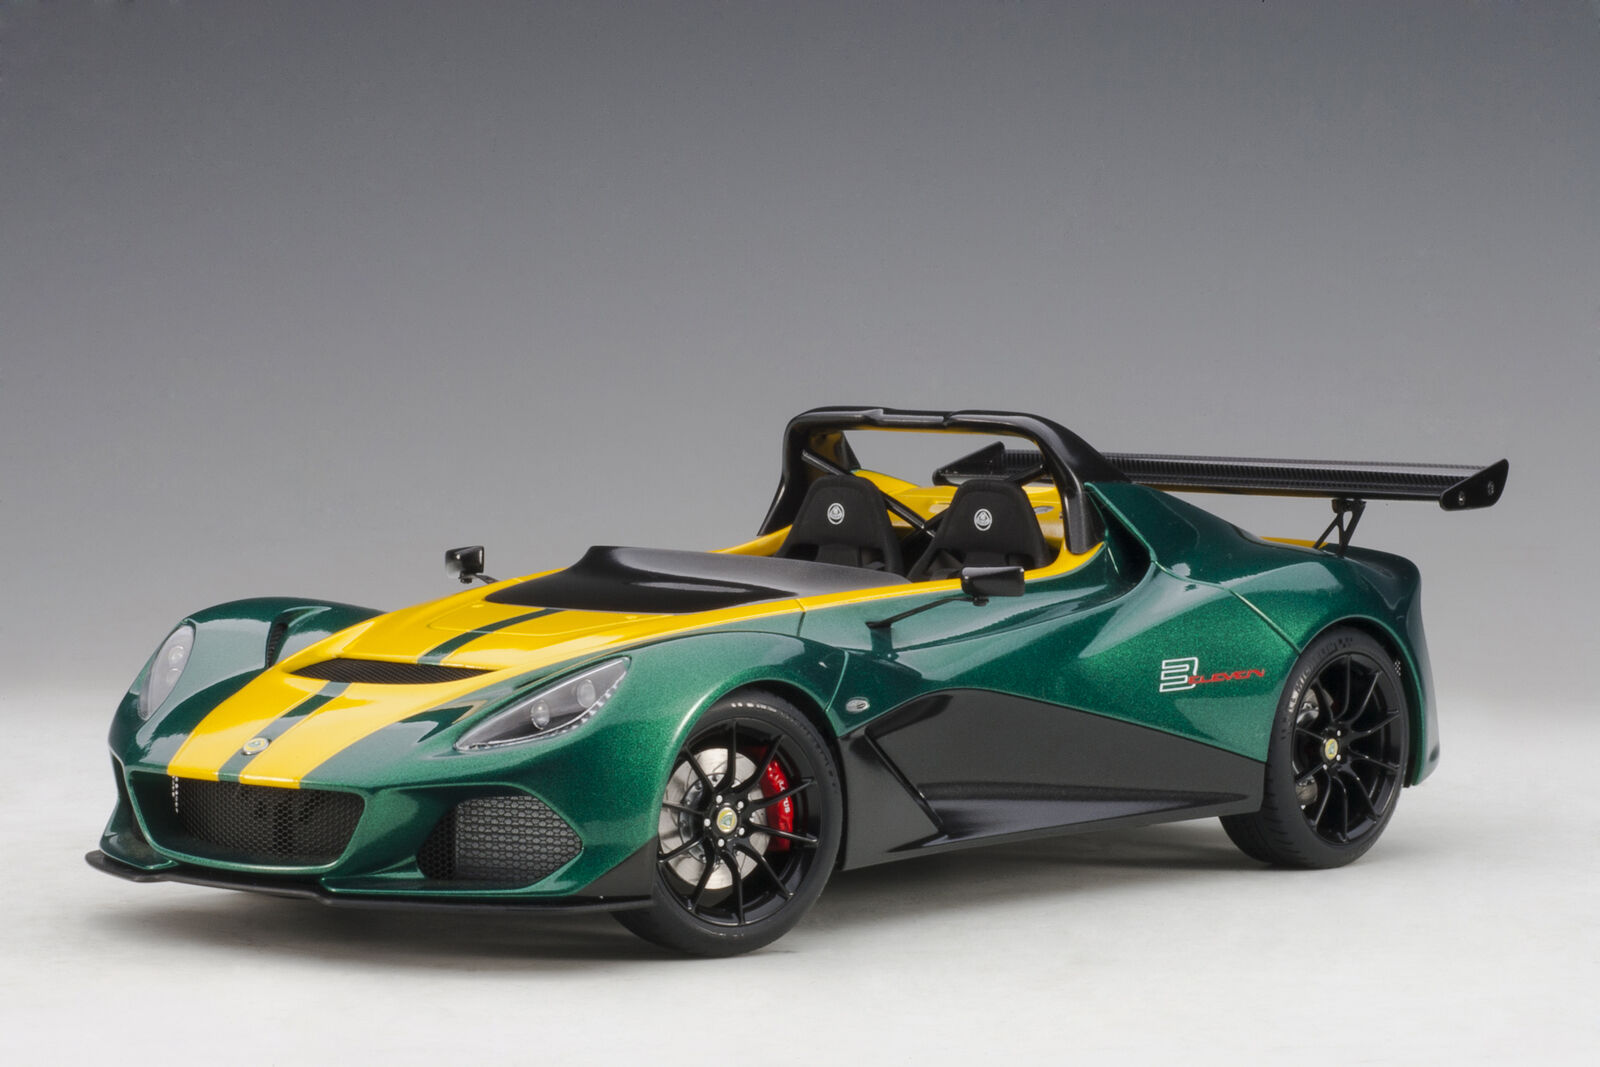 Lotus 3-Eleven Road 2017 vert With jaune Accents AUTOART 1 18 AA75392